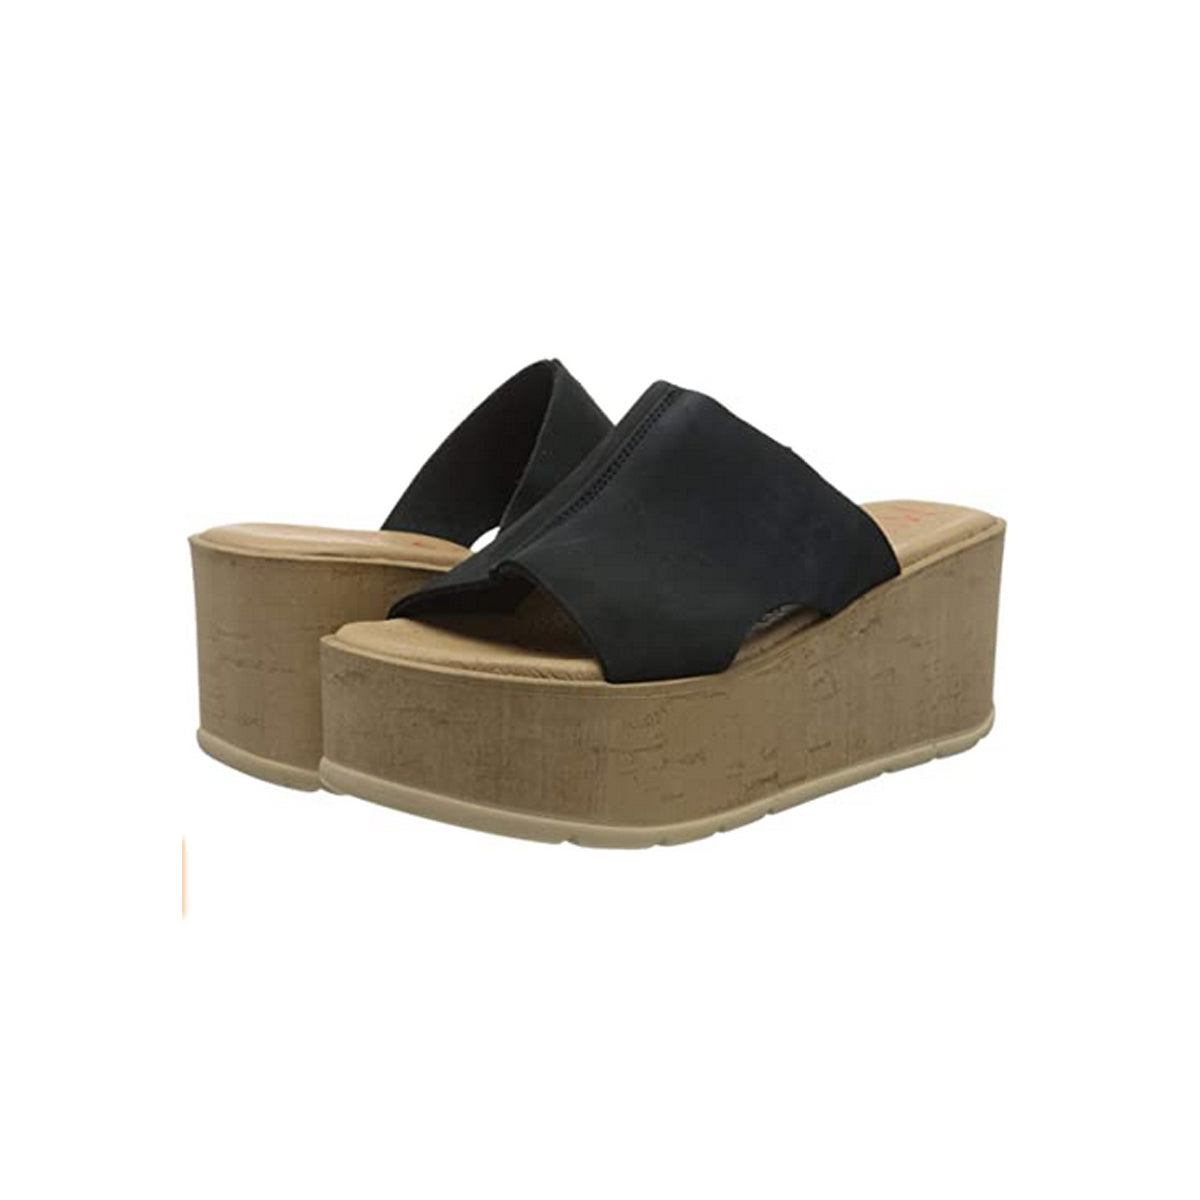 Musse & Cloud Women's Dusy Wedge Sandal - Black